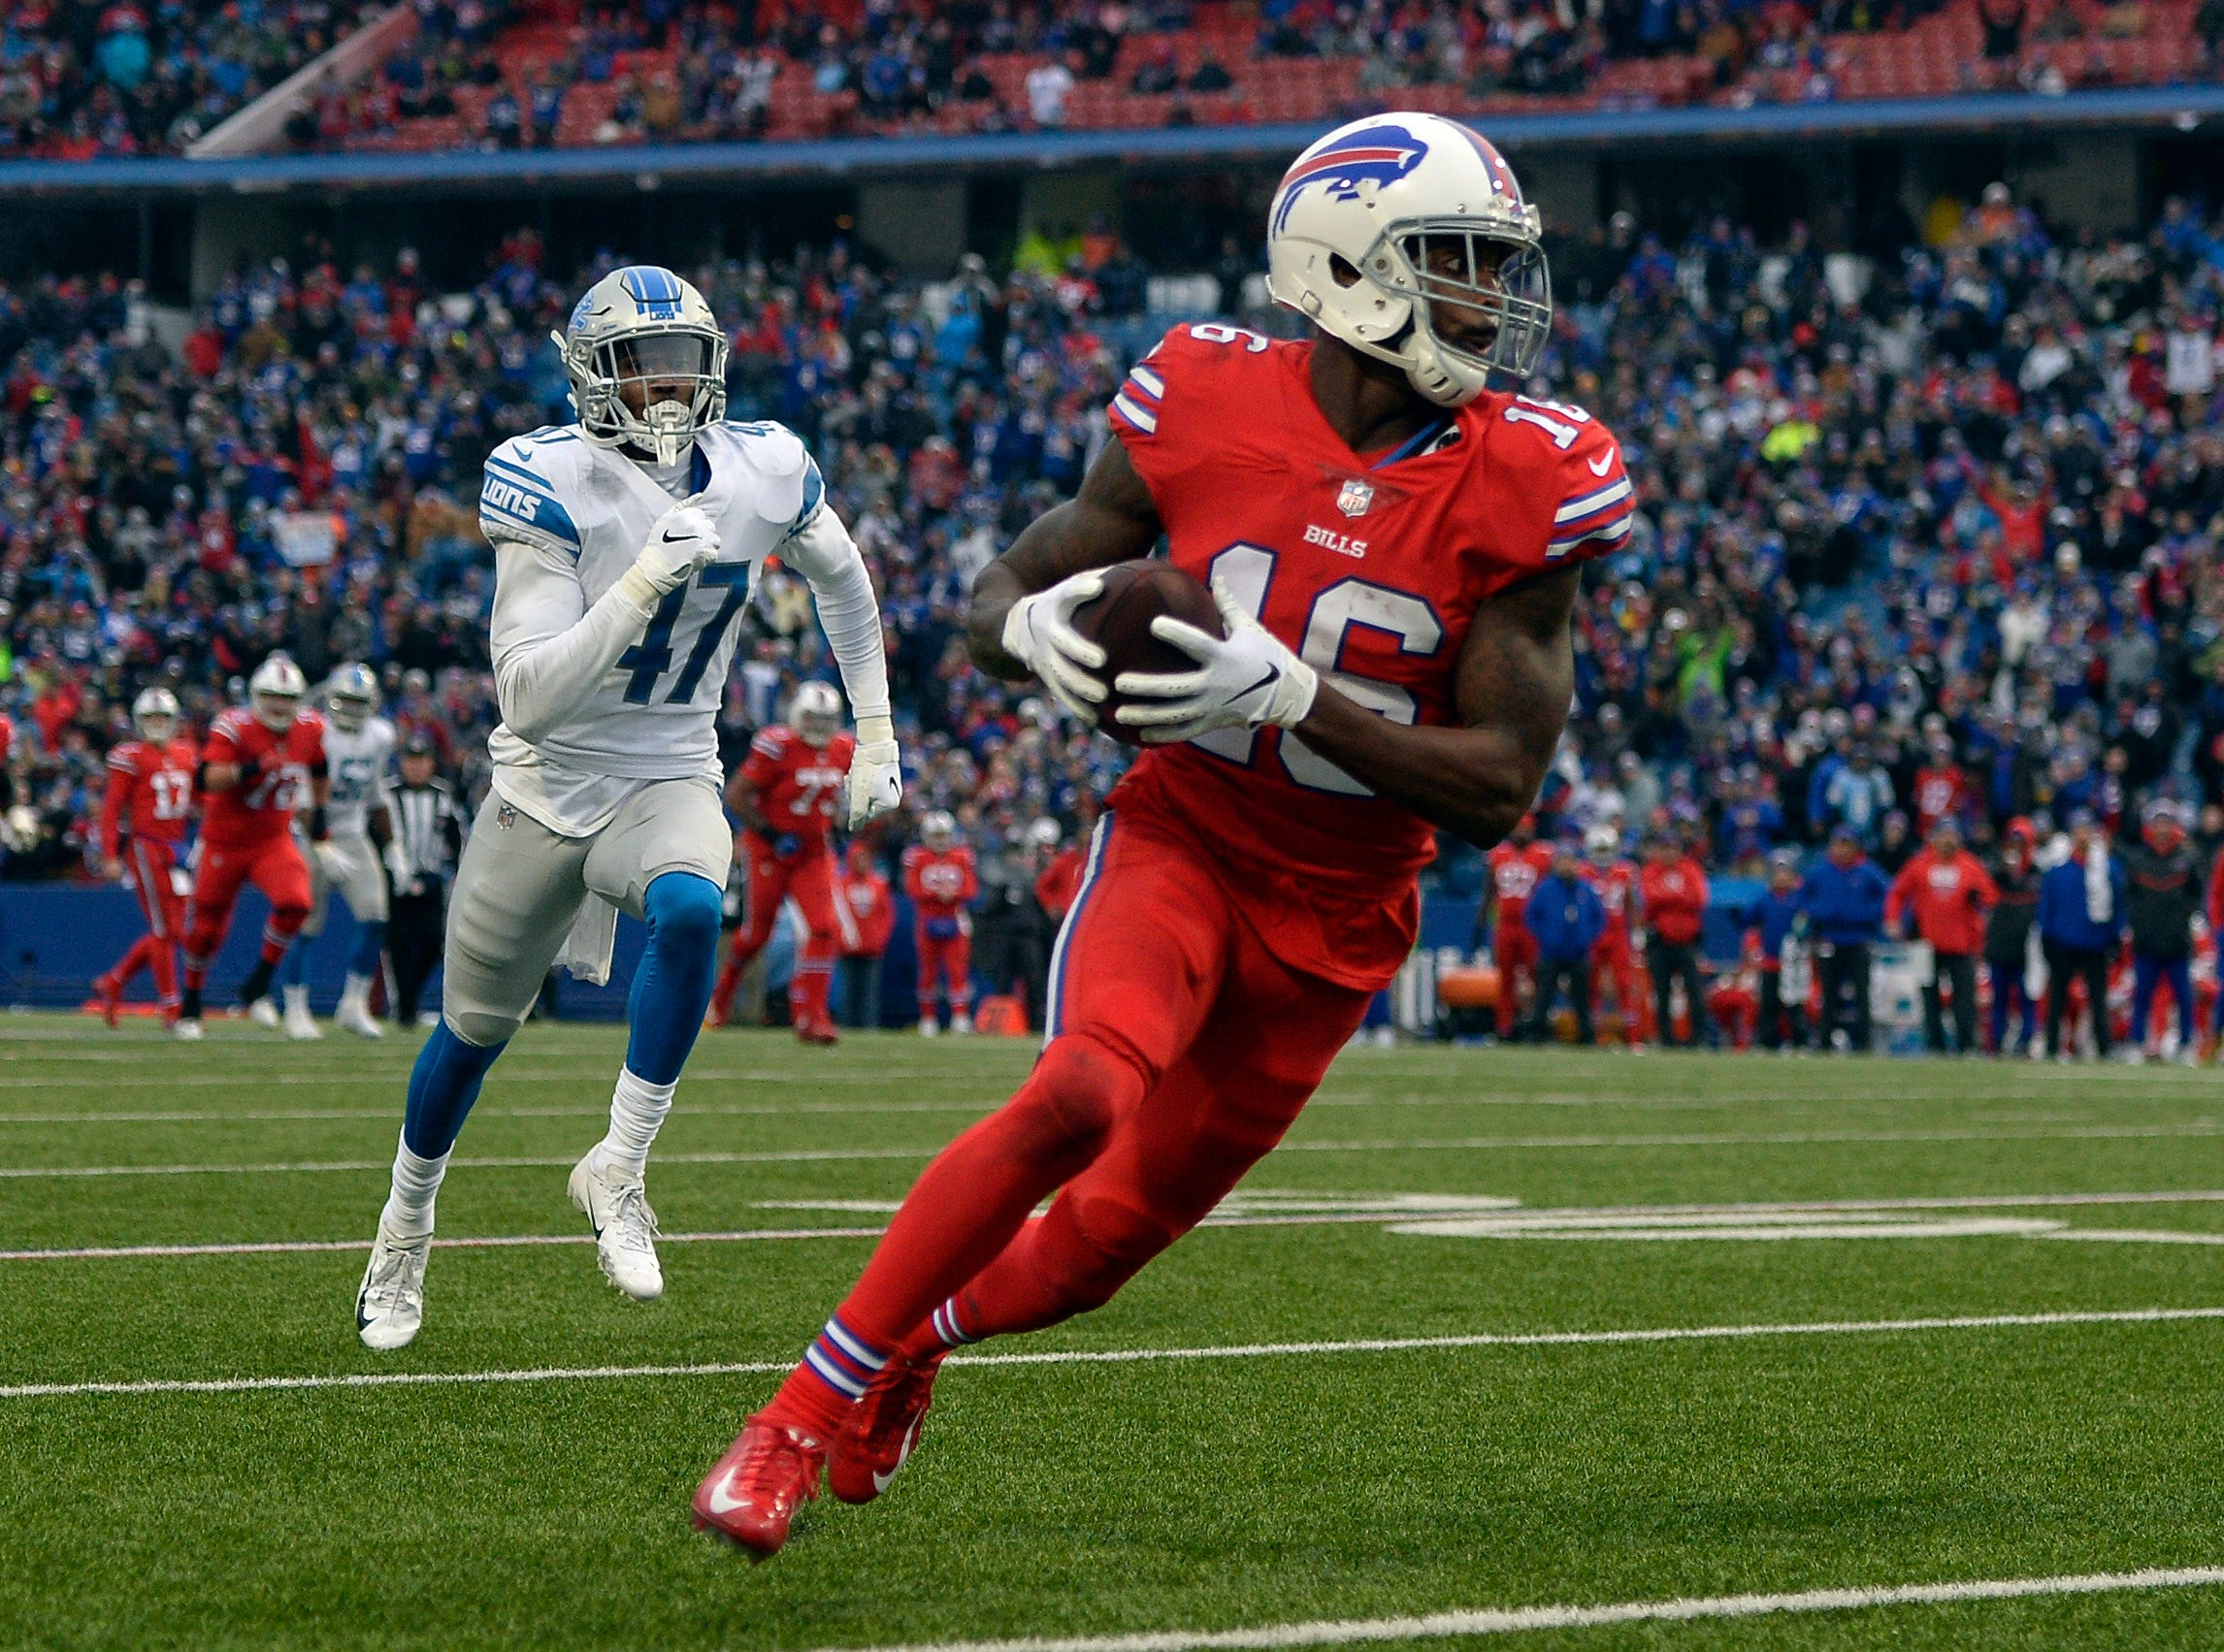 Buffalo Bills wide receiver Robert Foster (16) runs toward the end zone for a 42-yard touchdown during the second half of an NFL football game against the Detroit Lions, Sunday, Dec. 16, 2018, in Orchard Park, N.Y. Detroit Lost to Buffalo 14-13.